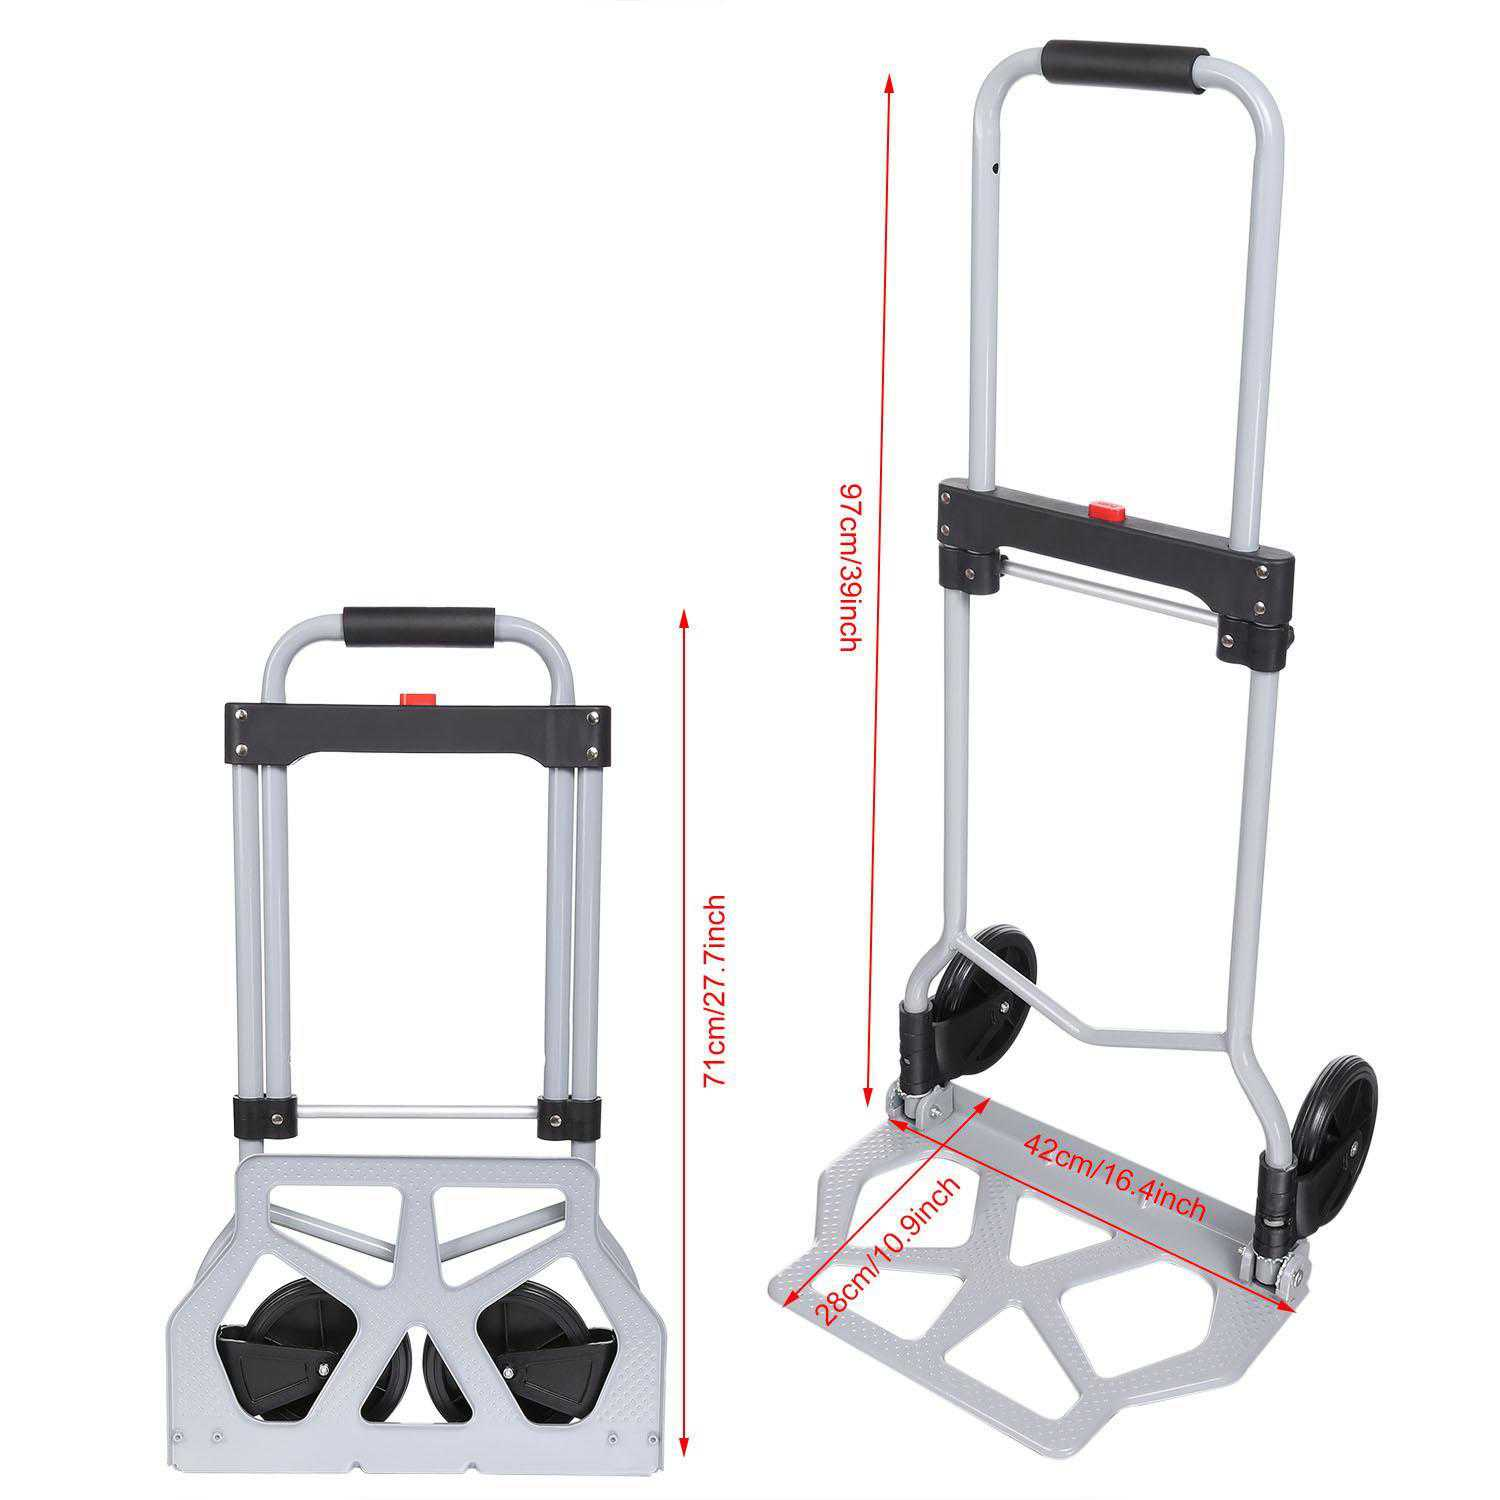 Portable Folding Hand Truck Dolly Luggage Carts Holds up to 220 lbs